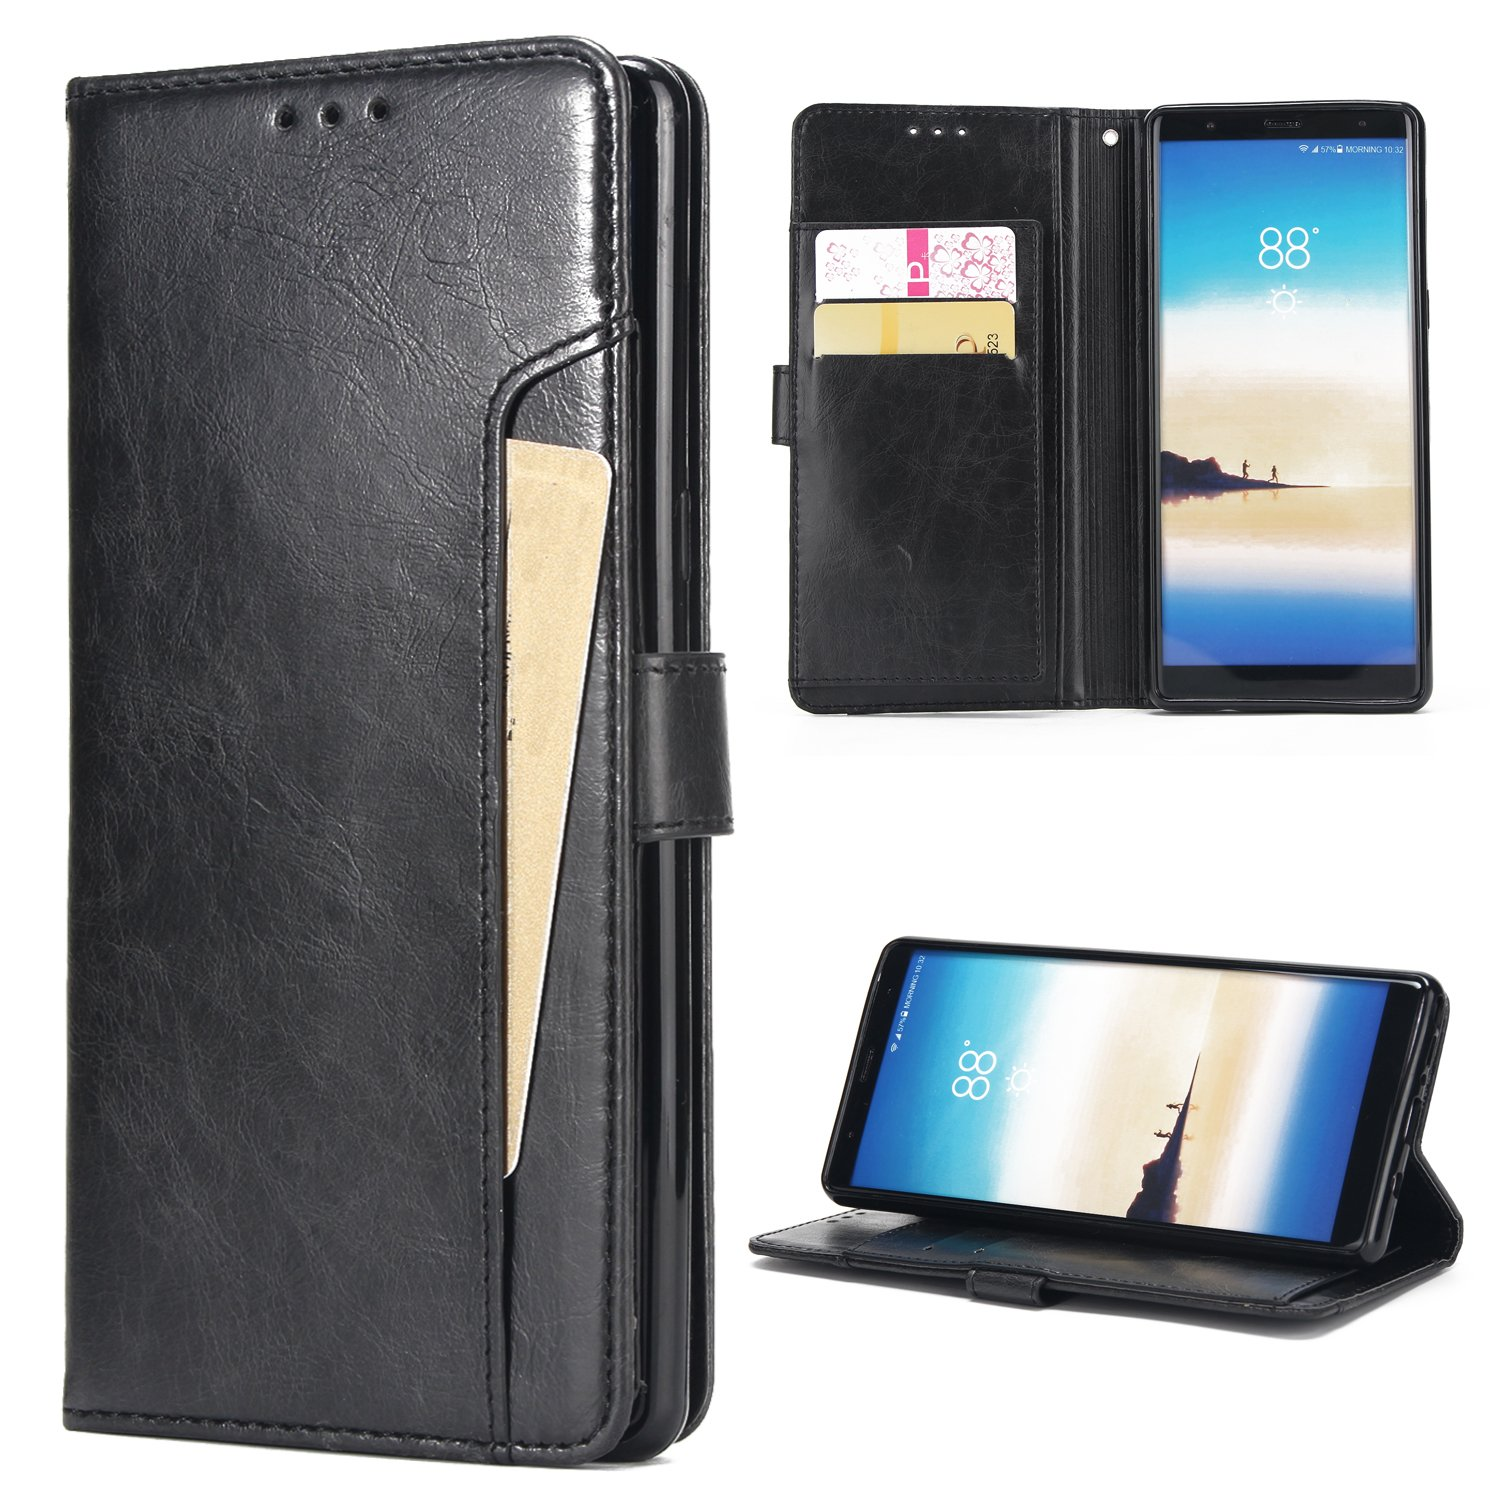 Samsung Note 9 Case,Galaxy Note 9 Wallet Case,FLYEE Ultra Thin Slim Folio Cover PU Leather Magnetic Protective Cover with Credit Card Slots, Cash Pocket,Stand Holder for Samsung Galaxy Note 9 Black